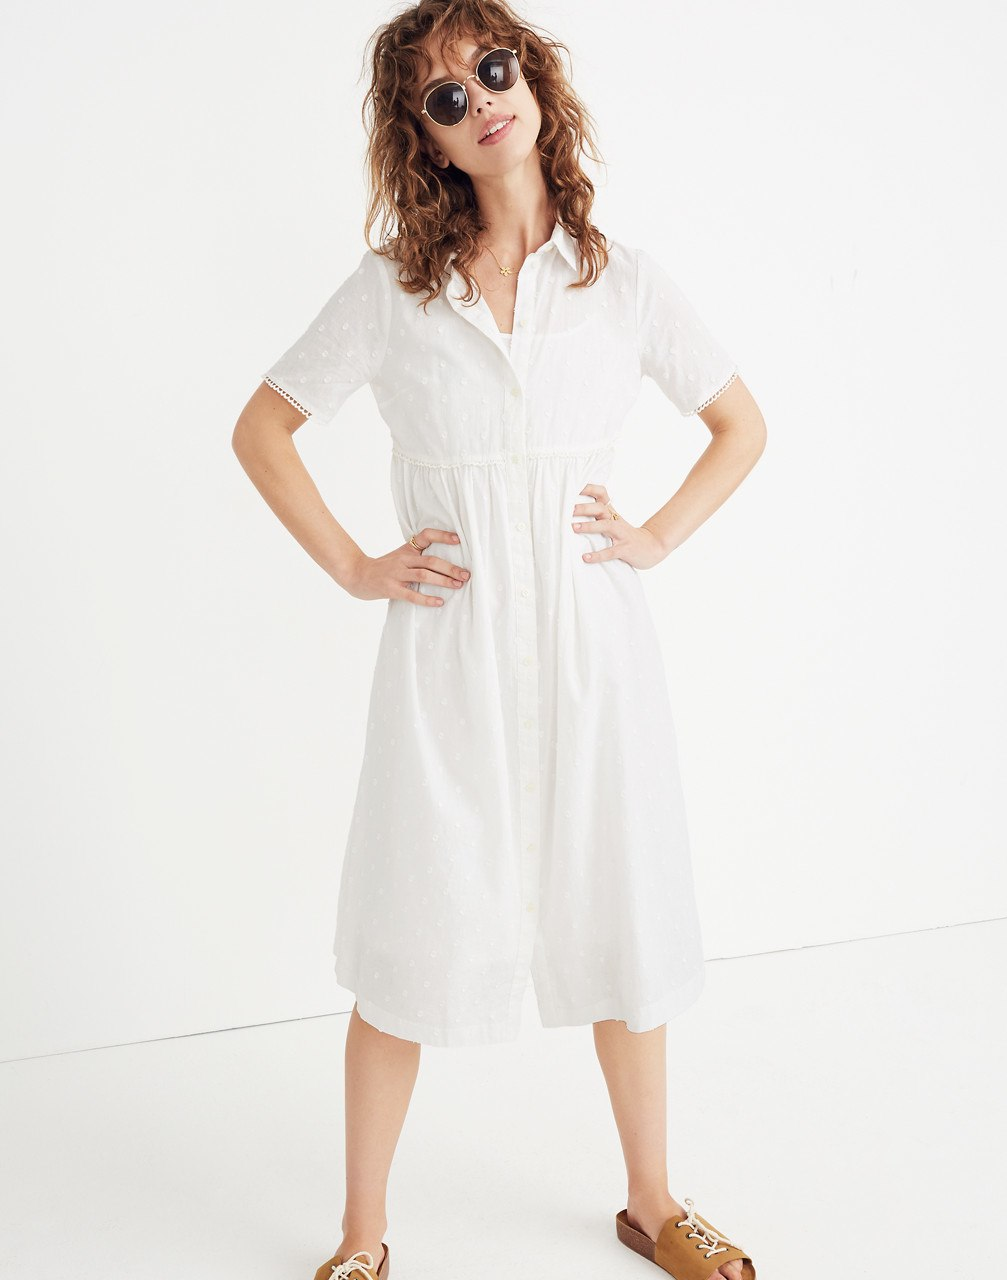 spring bridal shower dress white midi shirt dress